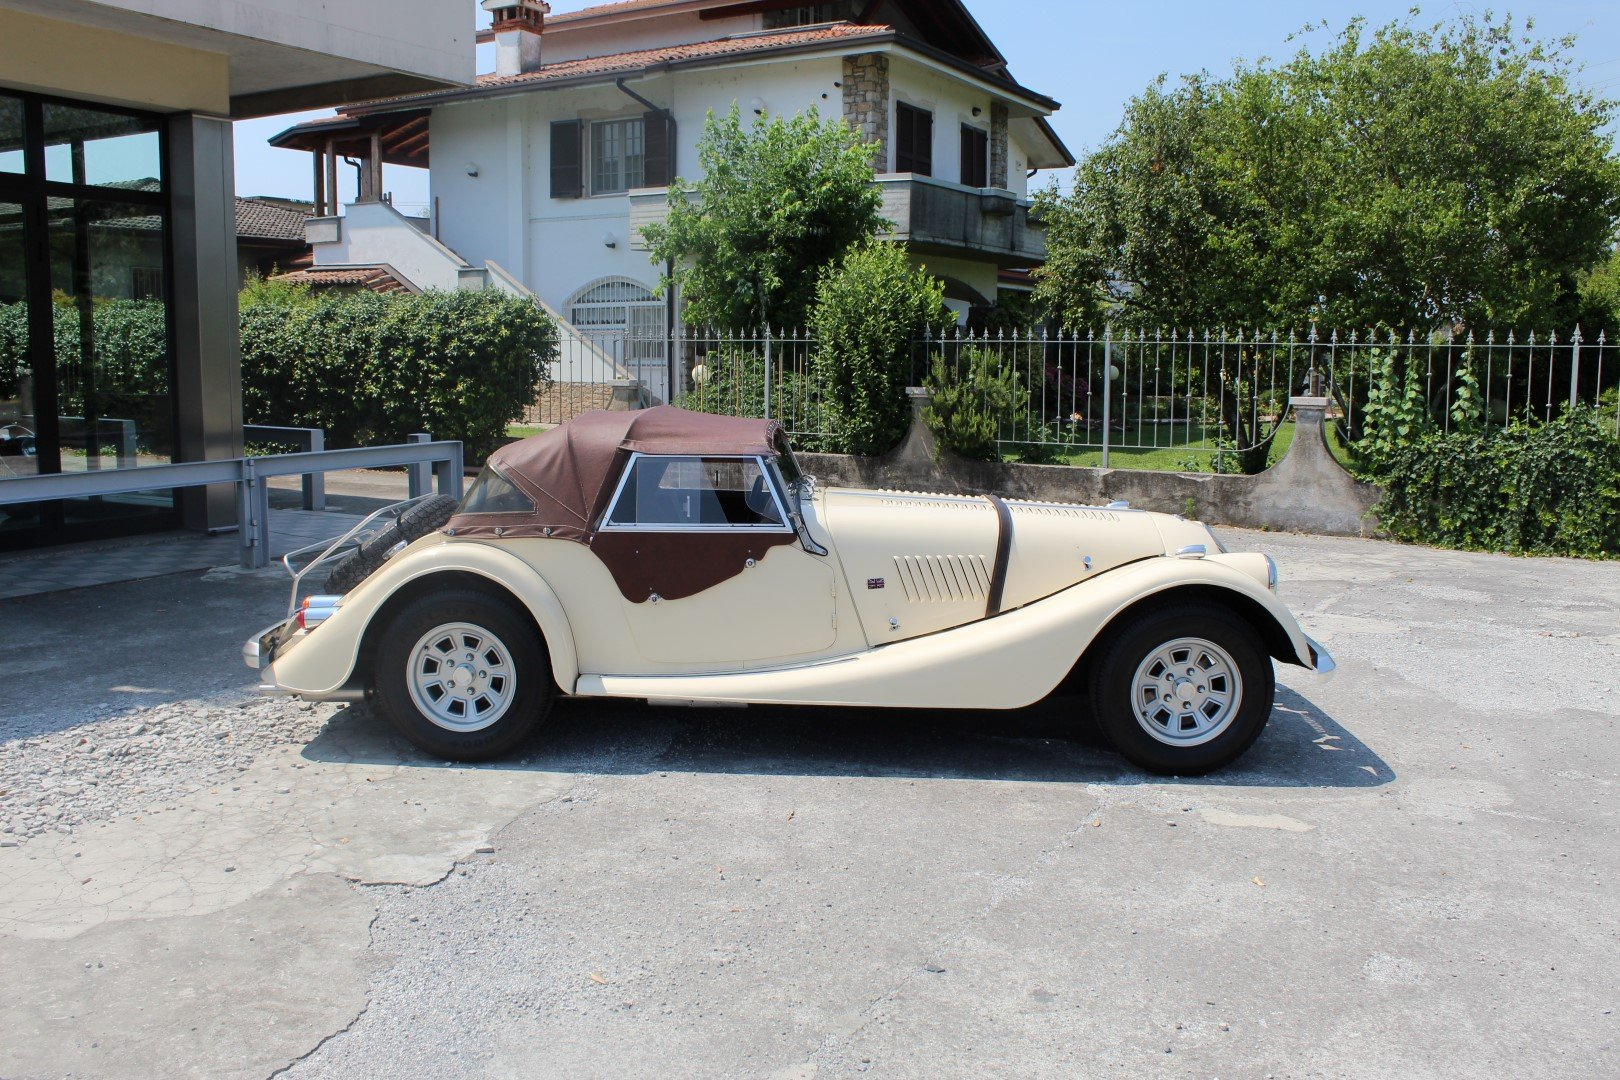 1979 Morgan plus 8 lhd oldtimer For Sale (picture 5 of 6)